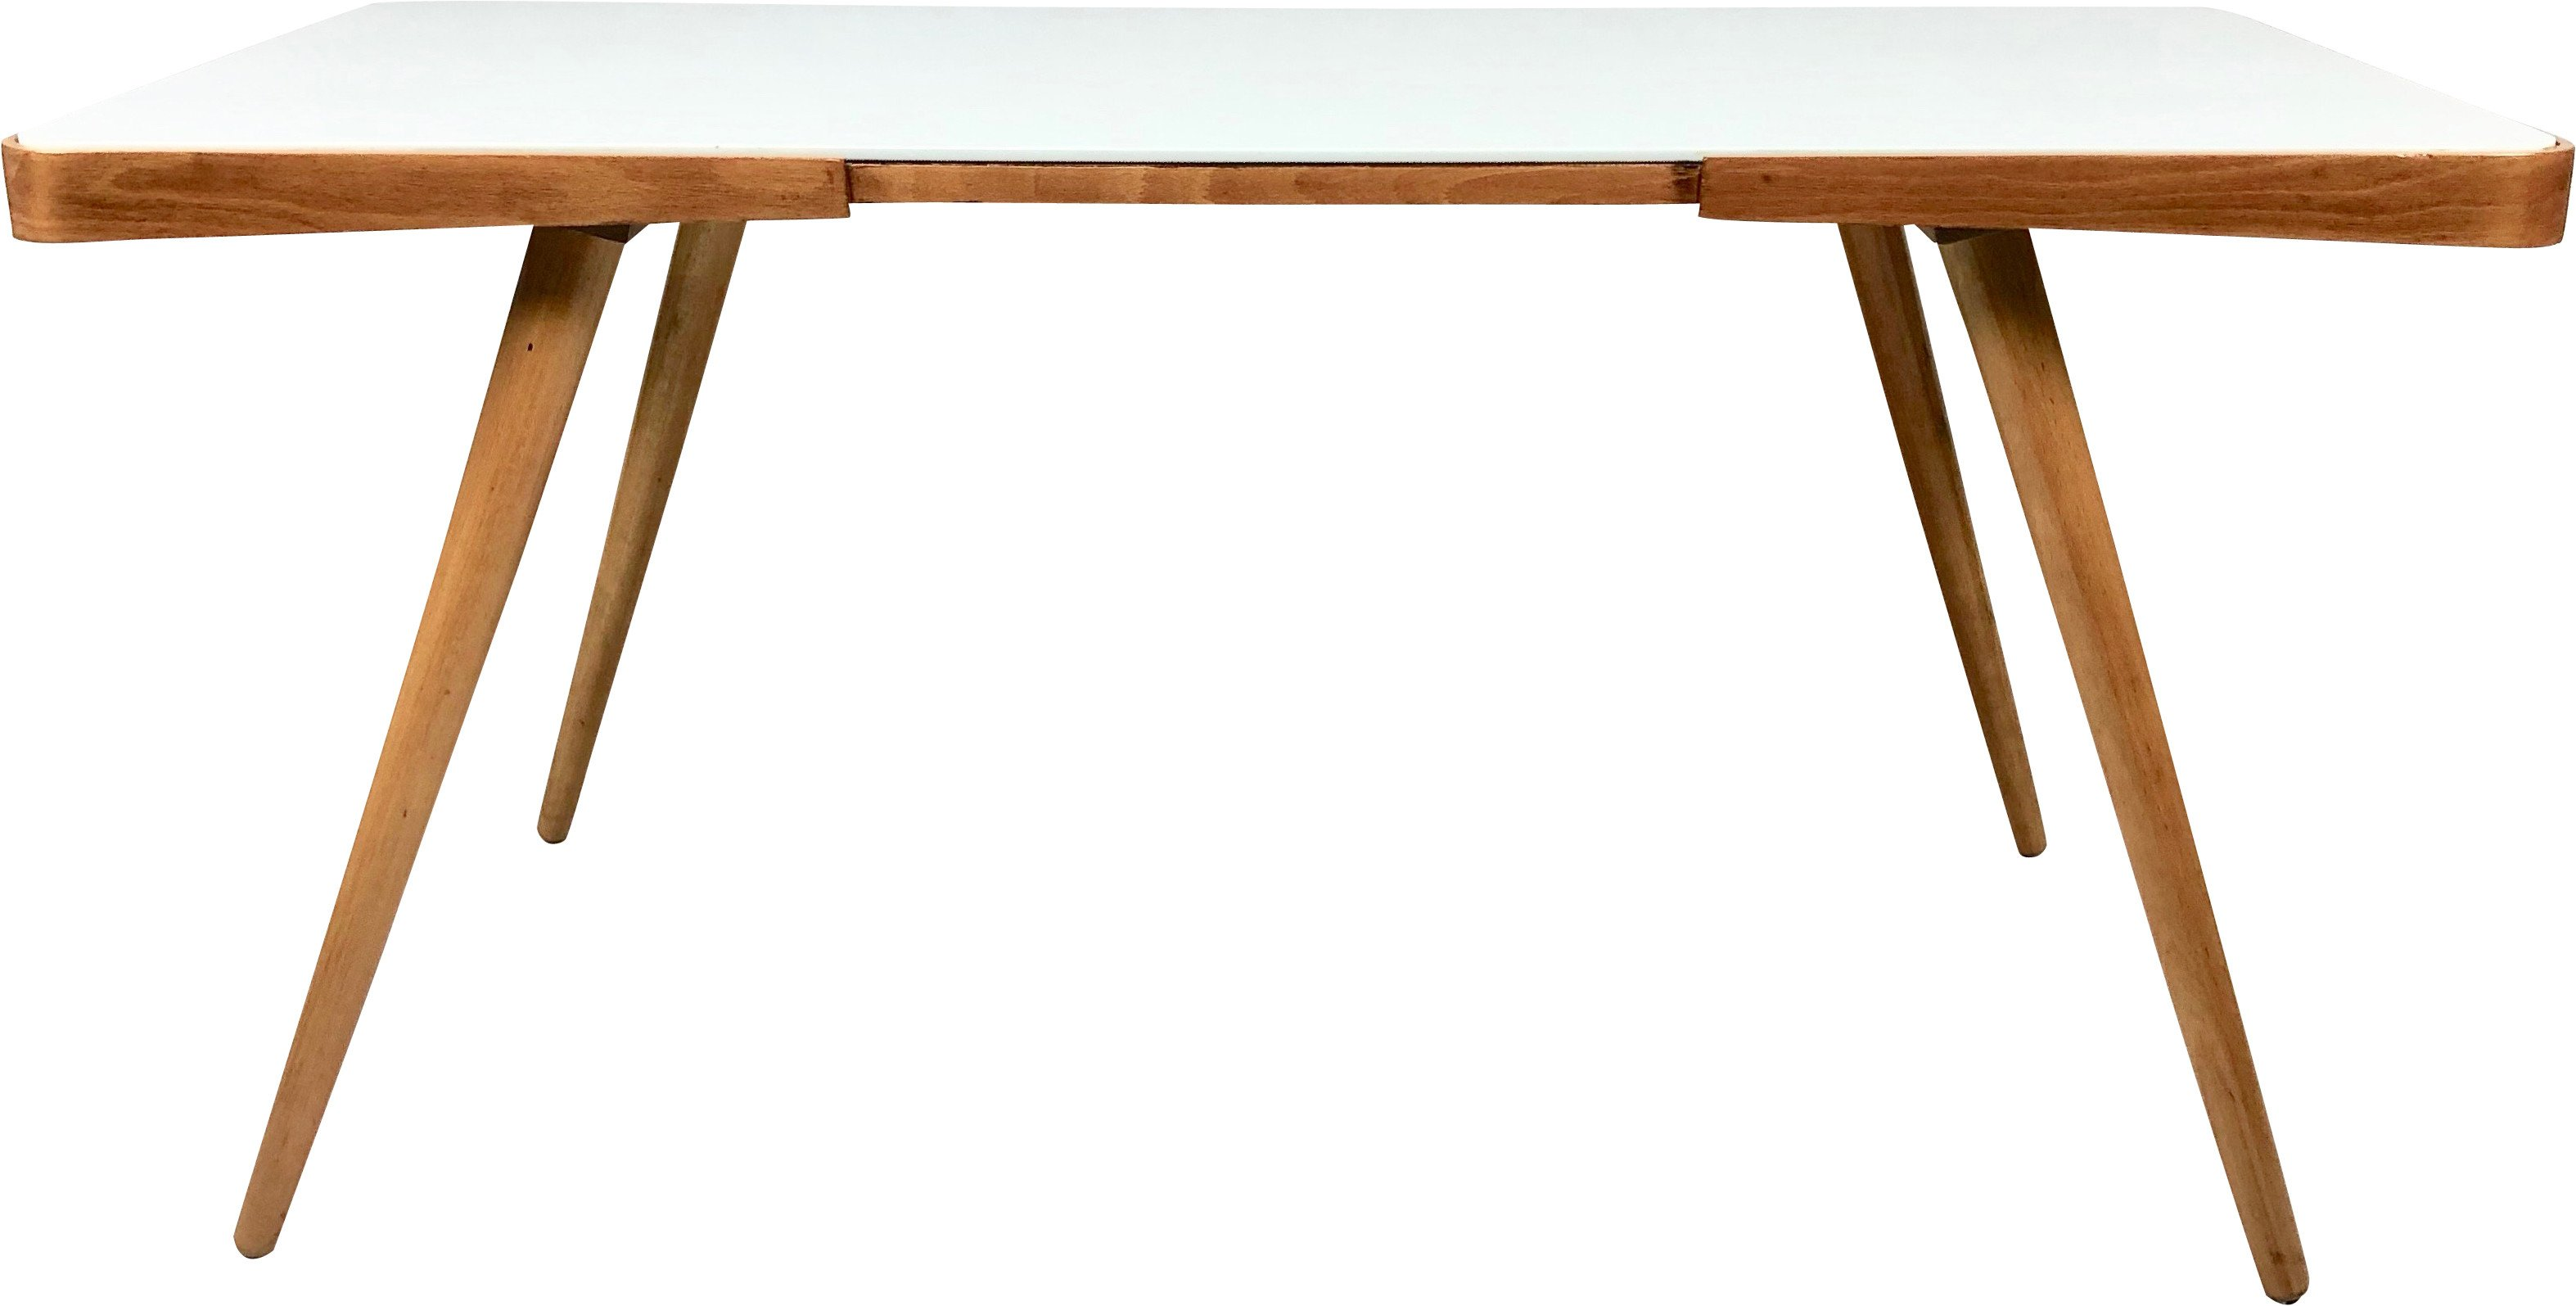 Coffee Table by J. Jiroutek for Týniště nad Orlicí, Czechoslovakia, 1960s